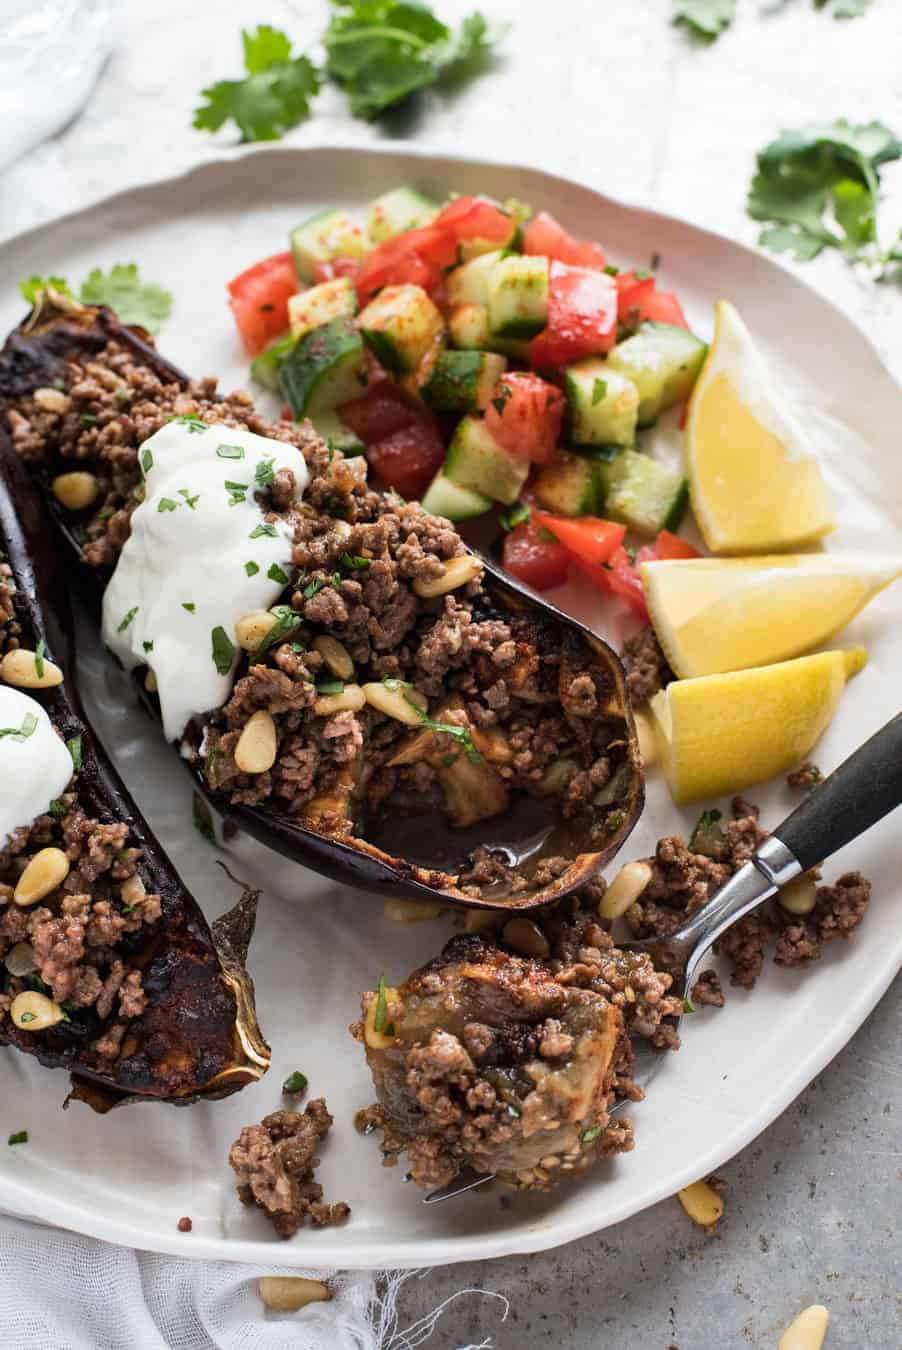 Middle Eastern Eggplant Recipes  Moroccan Baked Eggplant with Beef